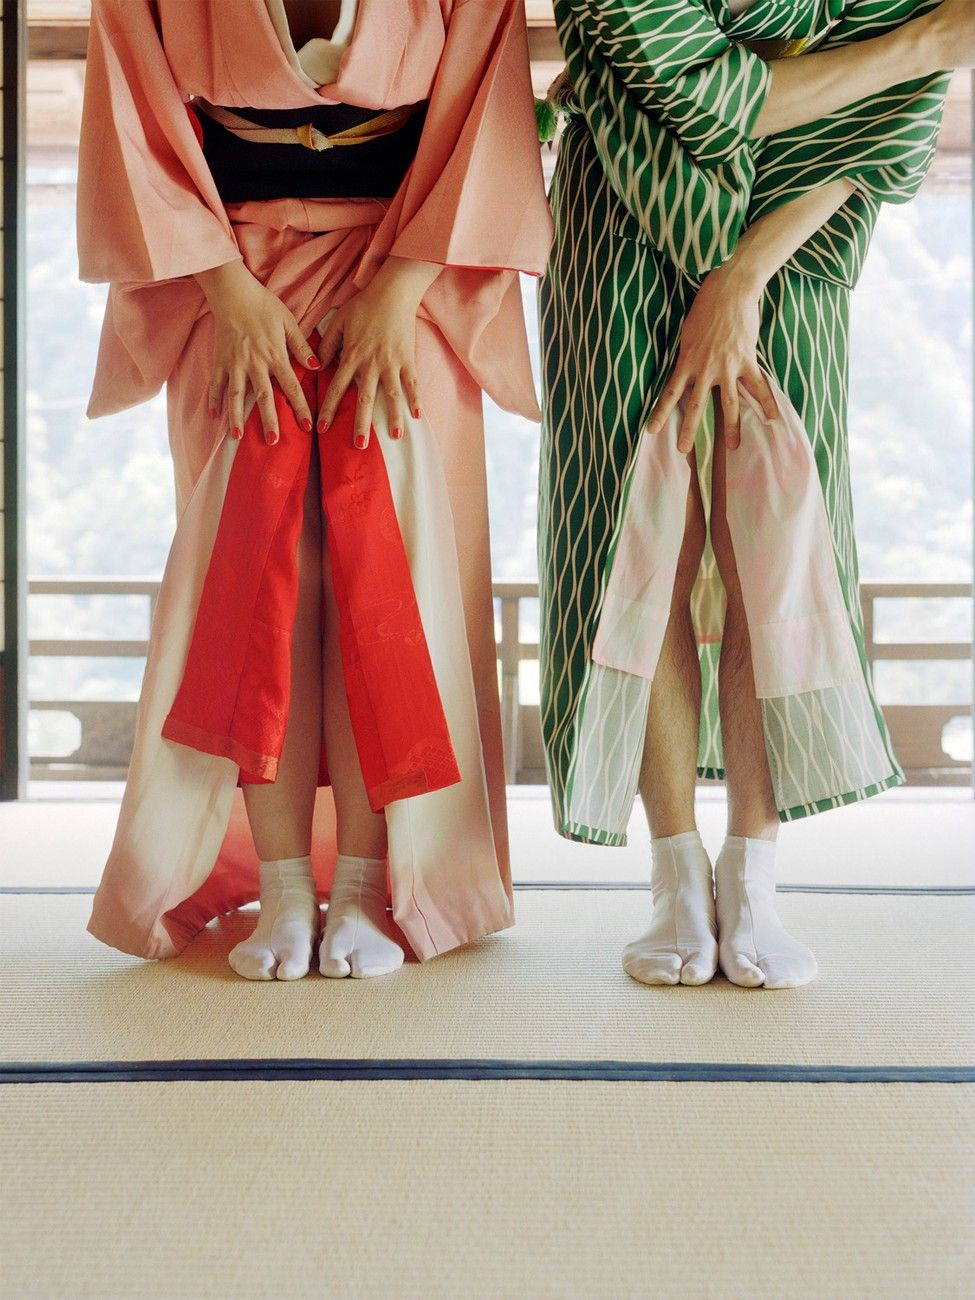 Pixy Liao S Year In Photos Japanese Traditional Dress Pixie Photographer